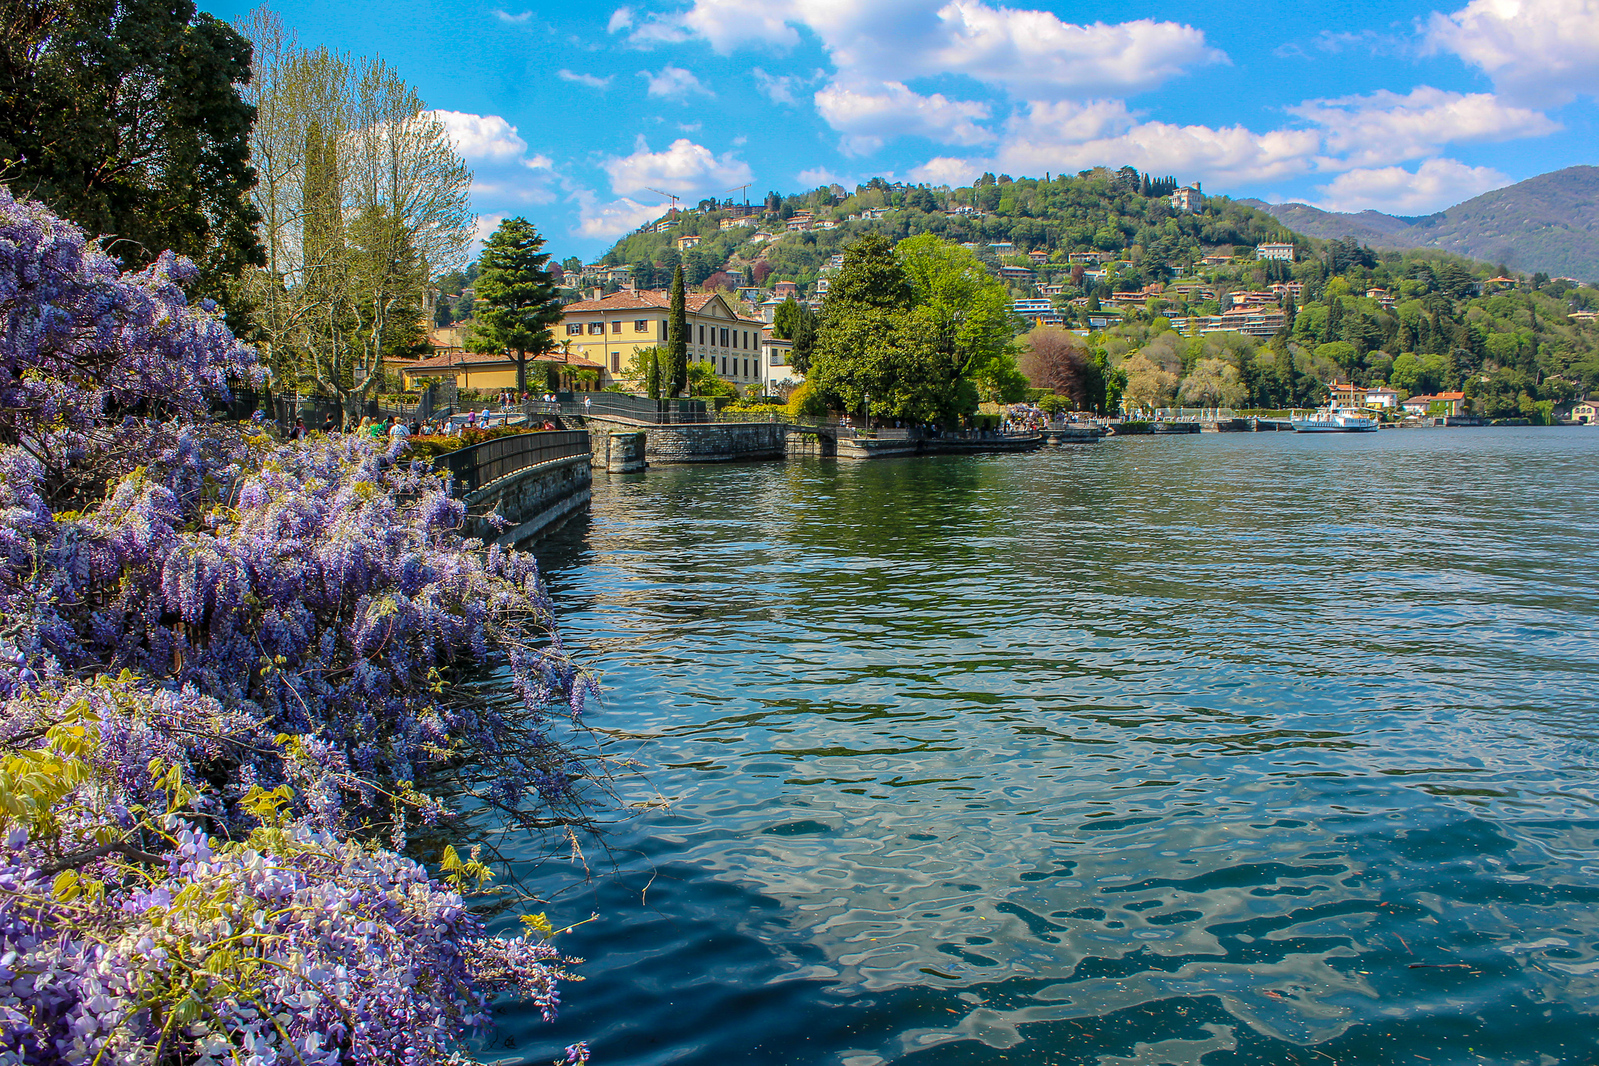 day trip to lake como from milan is worth it for these lovely views